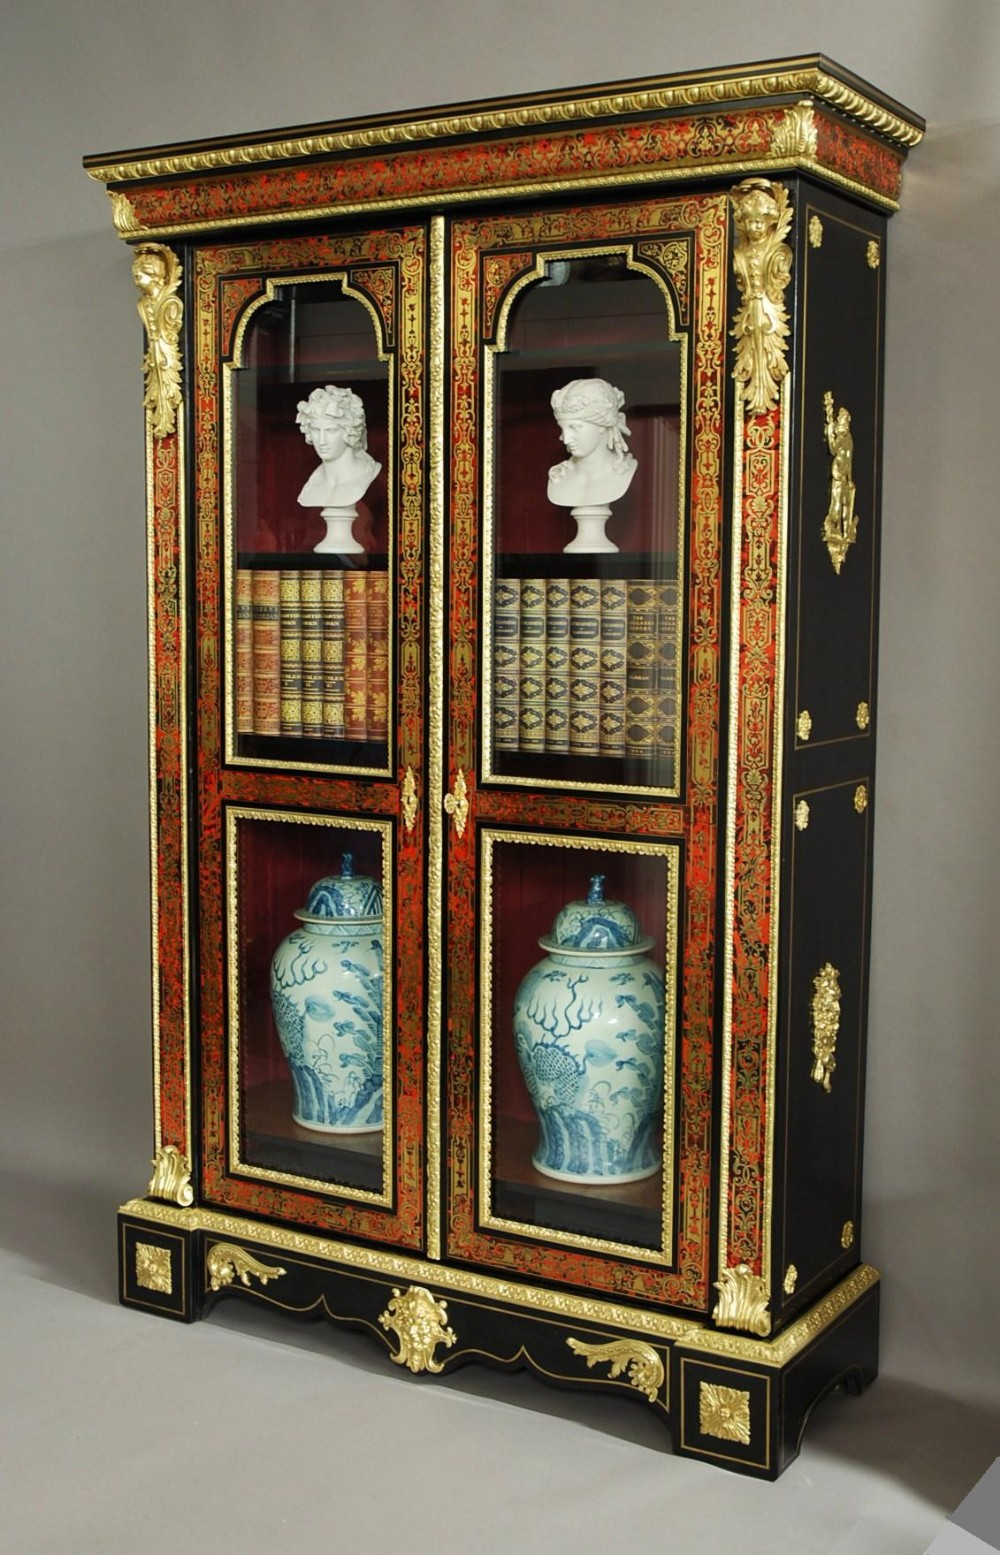 superb quality french napoleon iii boulle marquetry bibliotheque bookcase